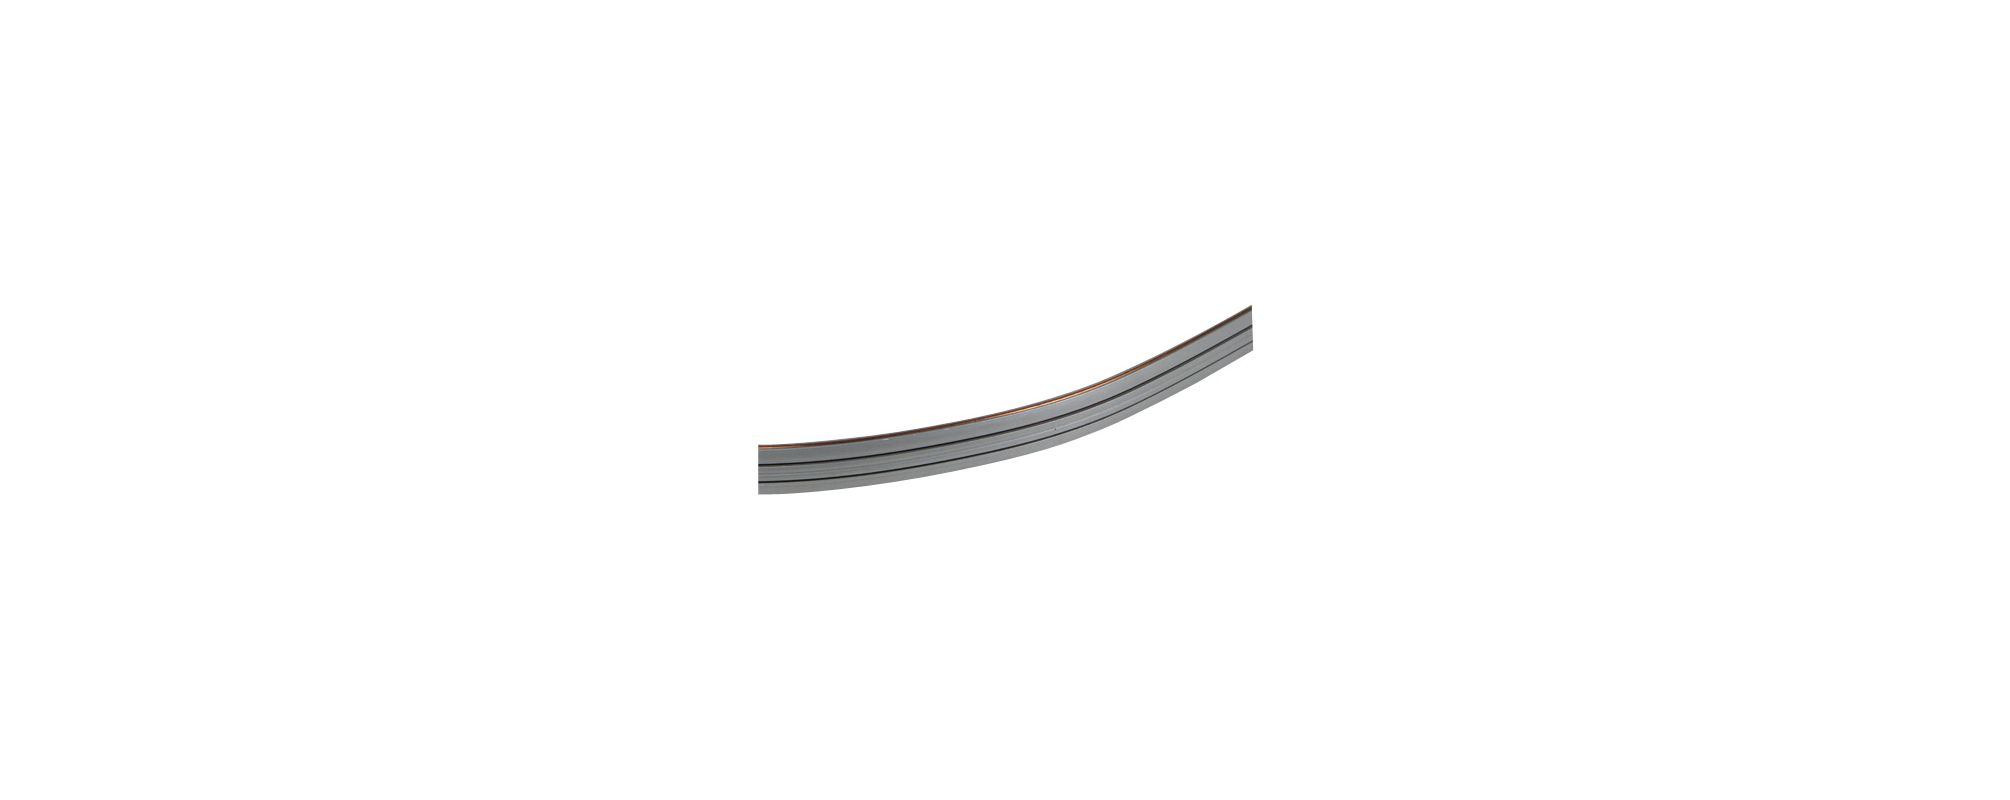 Elco EP7708 8ft. FlexMotion Rail System Track Segment Nickel Indoor